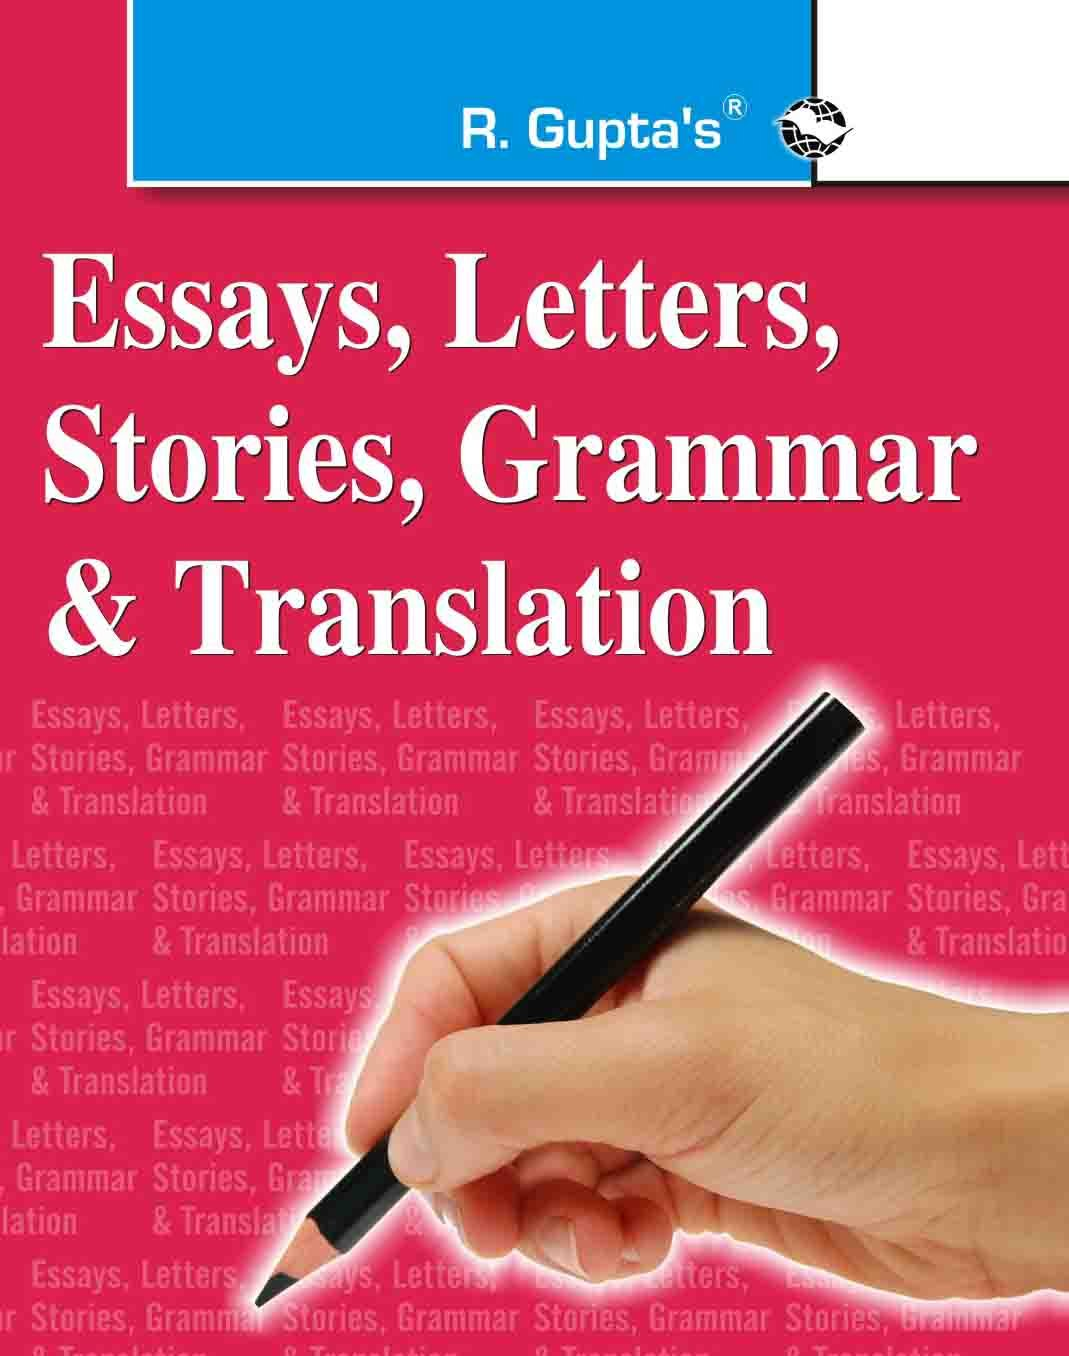 Proposal Essay Topics Ideas Download Writing High School Essays With Advanced English Grammar Pdf Shawn  Radcliffe Persuasive Essay Thesis Statement Examples also Argumentative Essay Proposal Examples For Report About Computer Essay Essays By Ralph Waldo  Romeo And Juliet English Essay